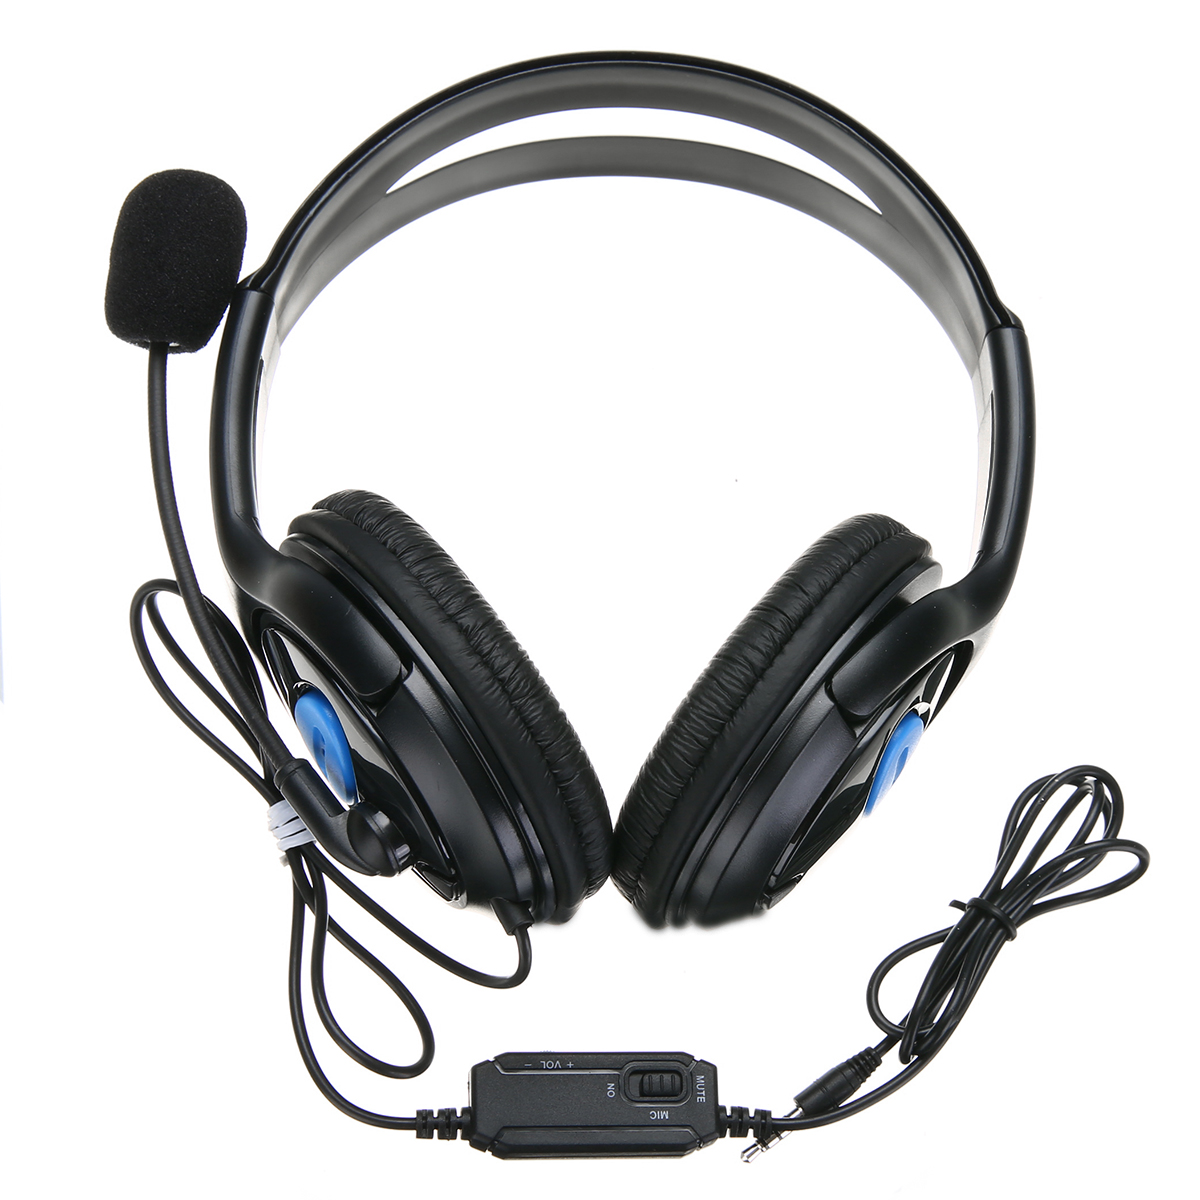 3.5mm Stereo Wired Gaming Headphone Black Blue Computer Gaming Headset Earphone with Mic For PS4 PC Mayitr